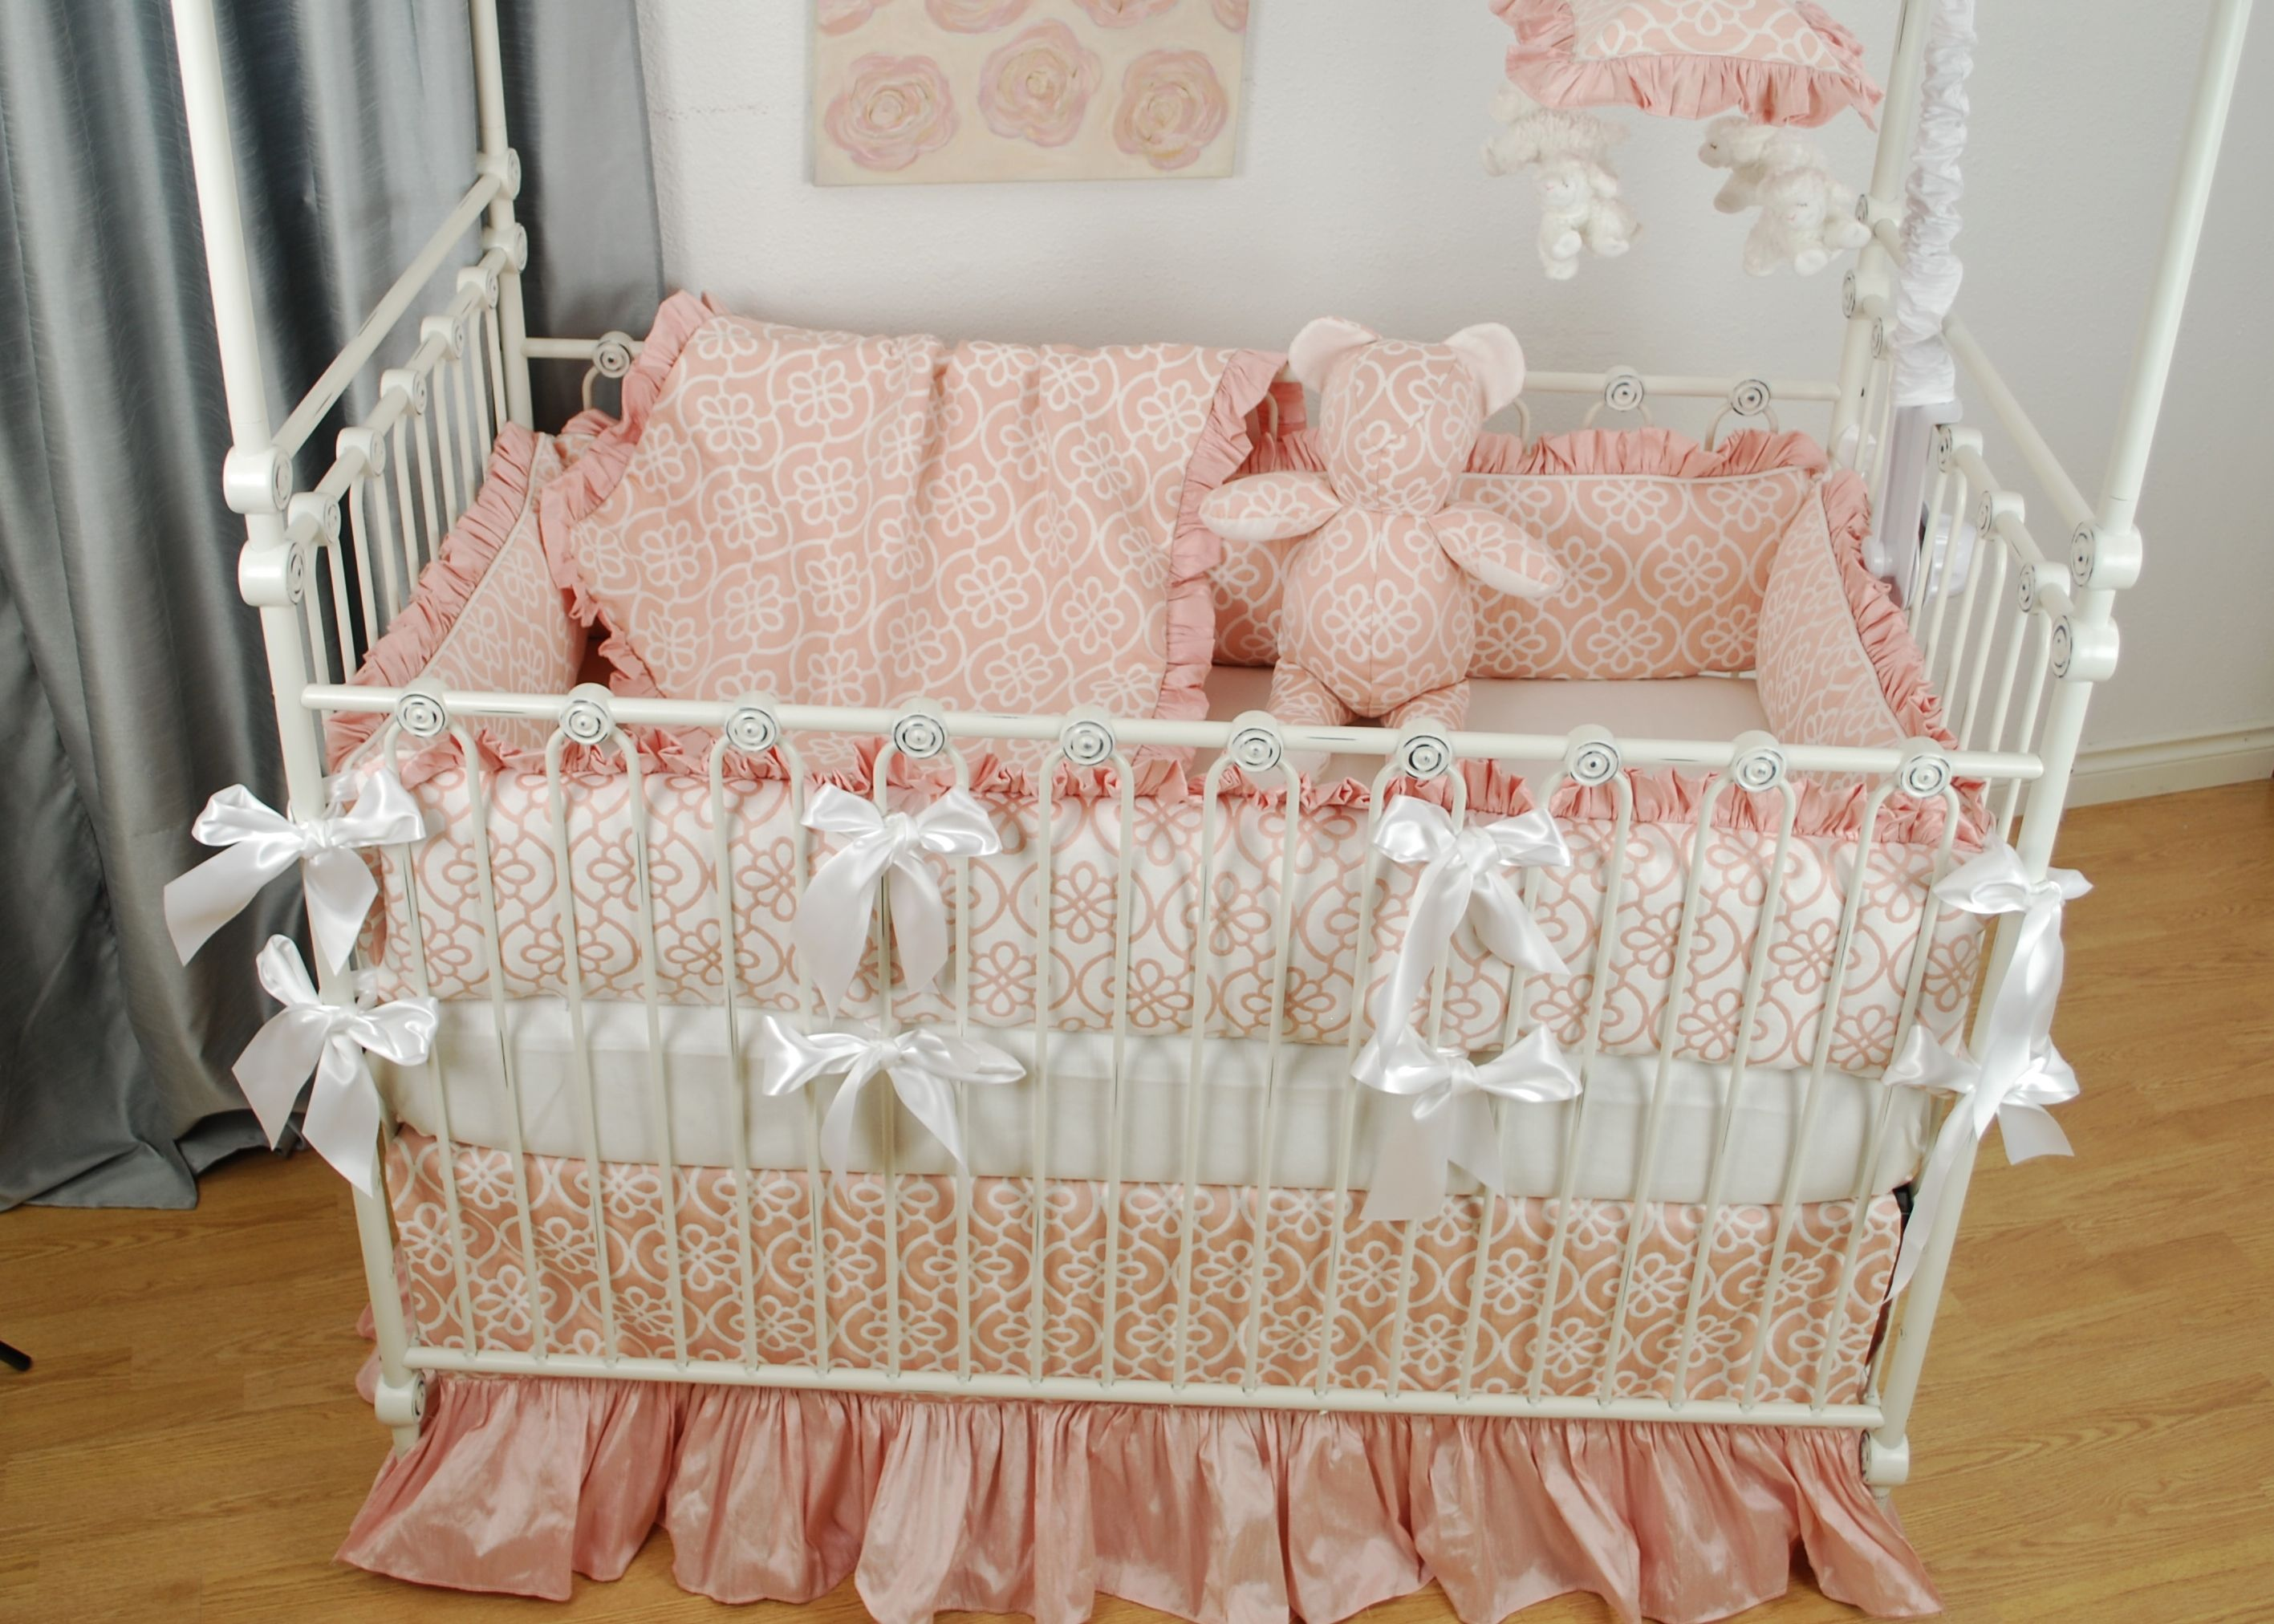 Baby cribs with canopy - Cribs For Babies Baby Cribs Babies Nursery Canopy Crib Crib Bedding Canopies White Bows Nurseries Silk